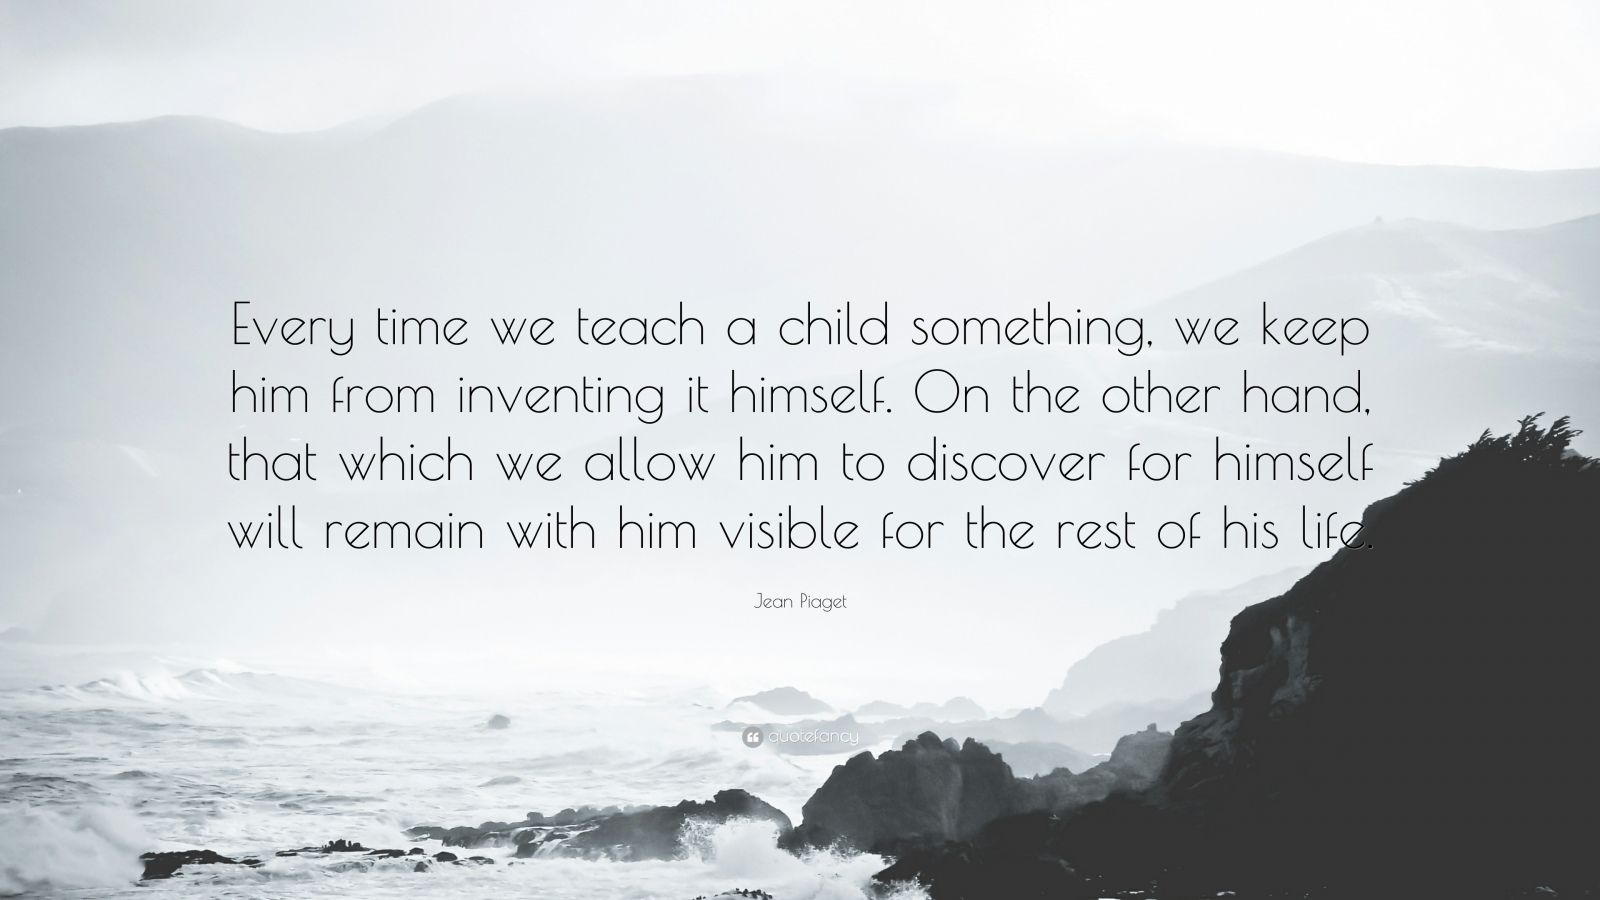 """Jean Piaget Quote: """"Every time we teach a child something, we keep him from inventing it himself. On the other hand, that which we allow him to discover for himself will remain with him visible for the rest of his life."""""""